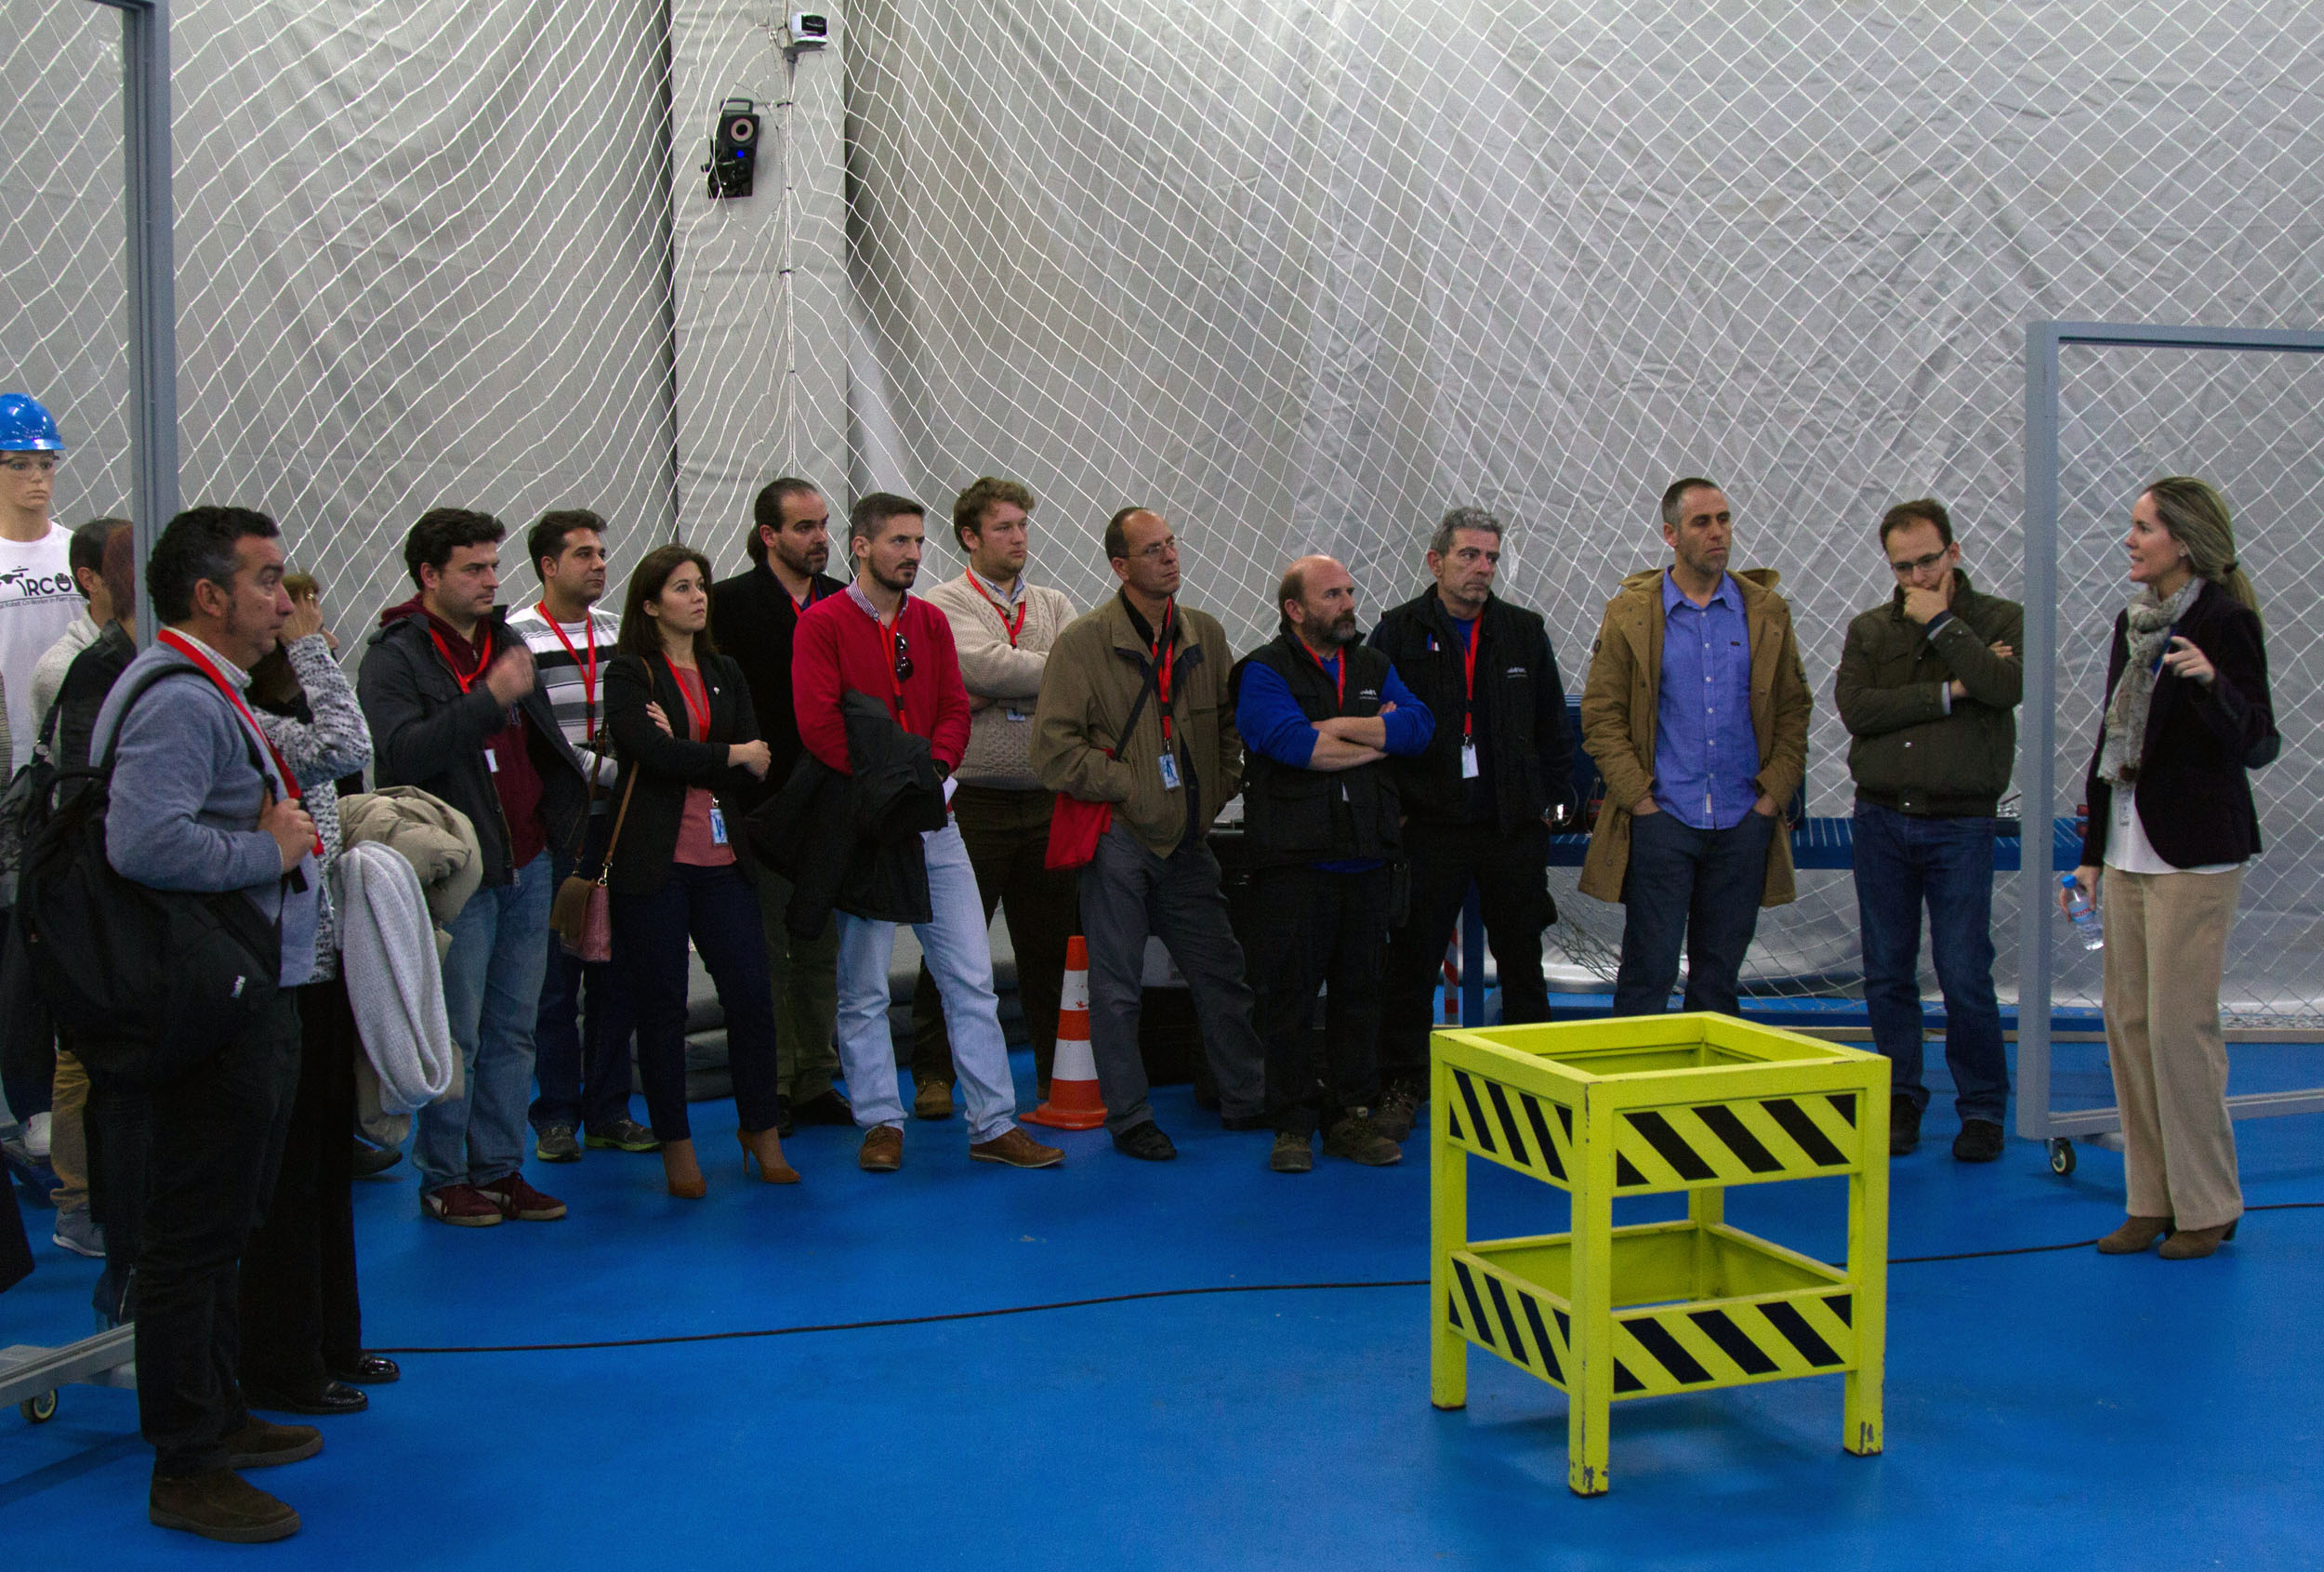 Our center shows opportunities of entrepreneurship and business development that offer the aerospace industry to young entrepreneurs